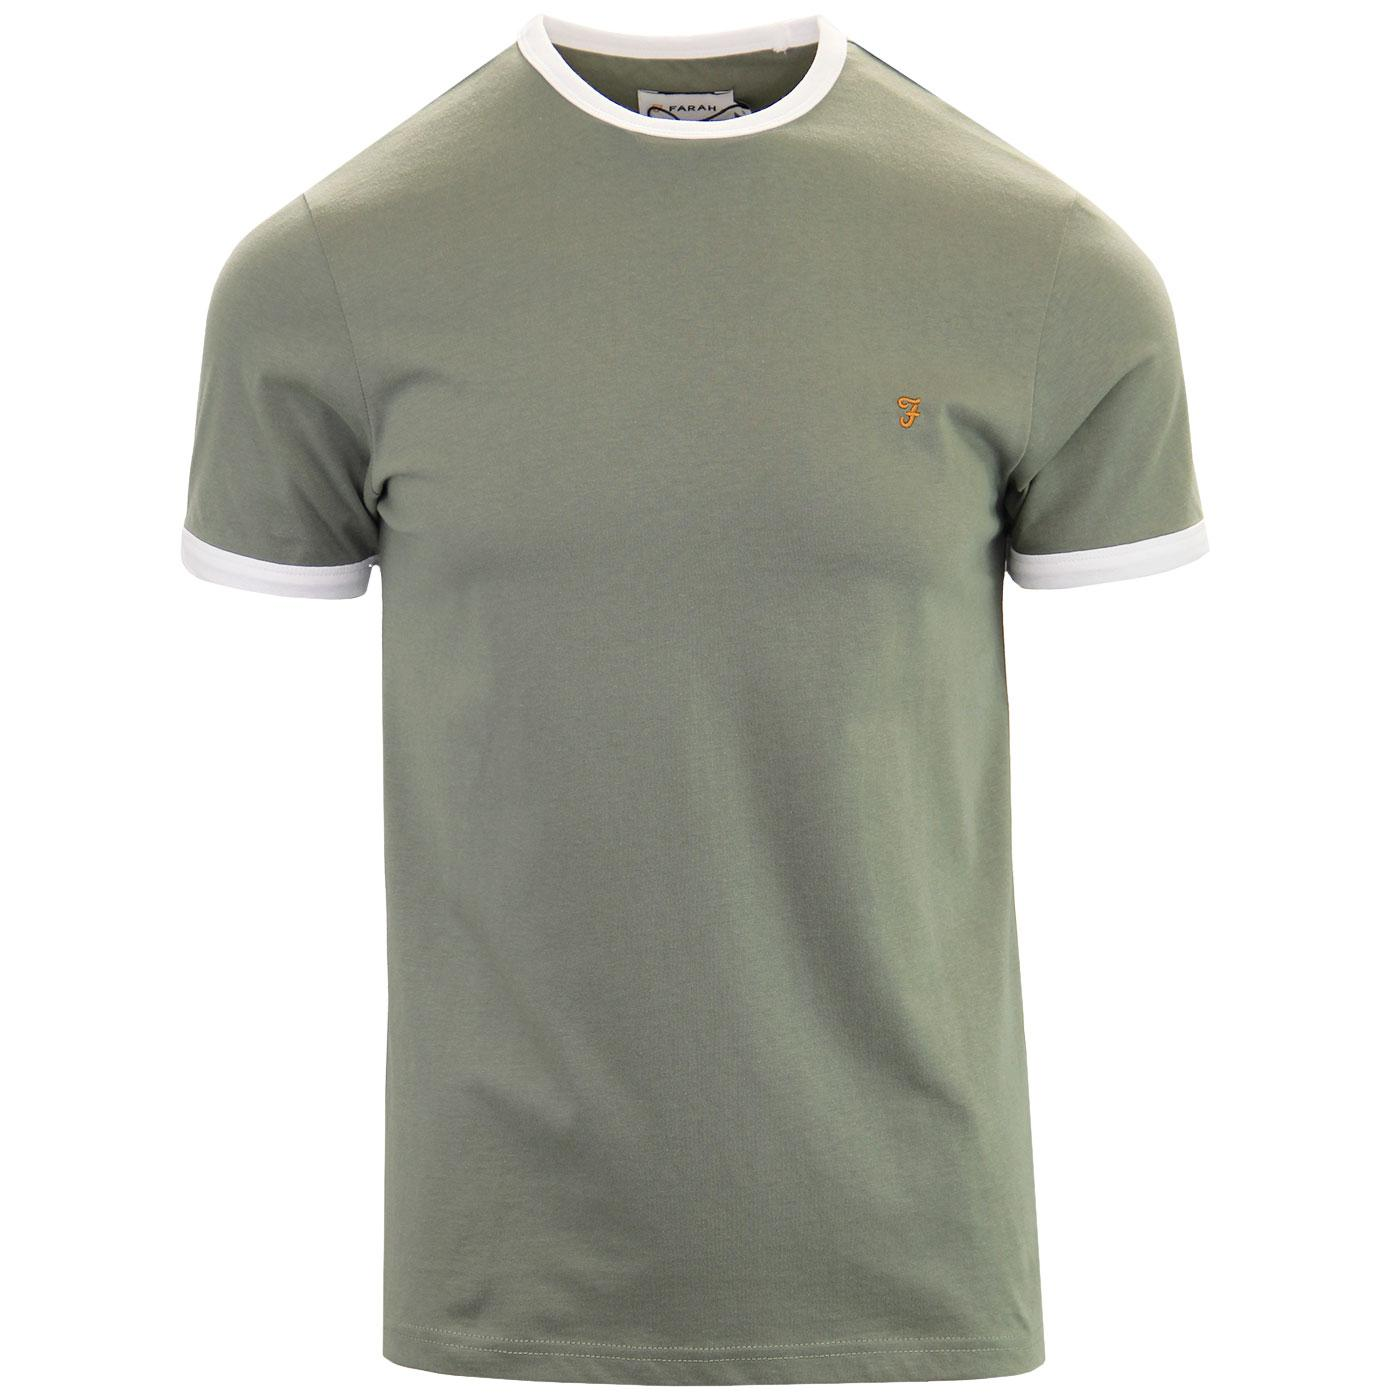 Groves FARAH Retro Mod Ringer Tee (Winter Balsam)